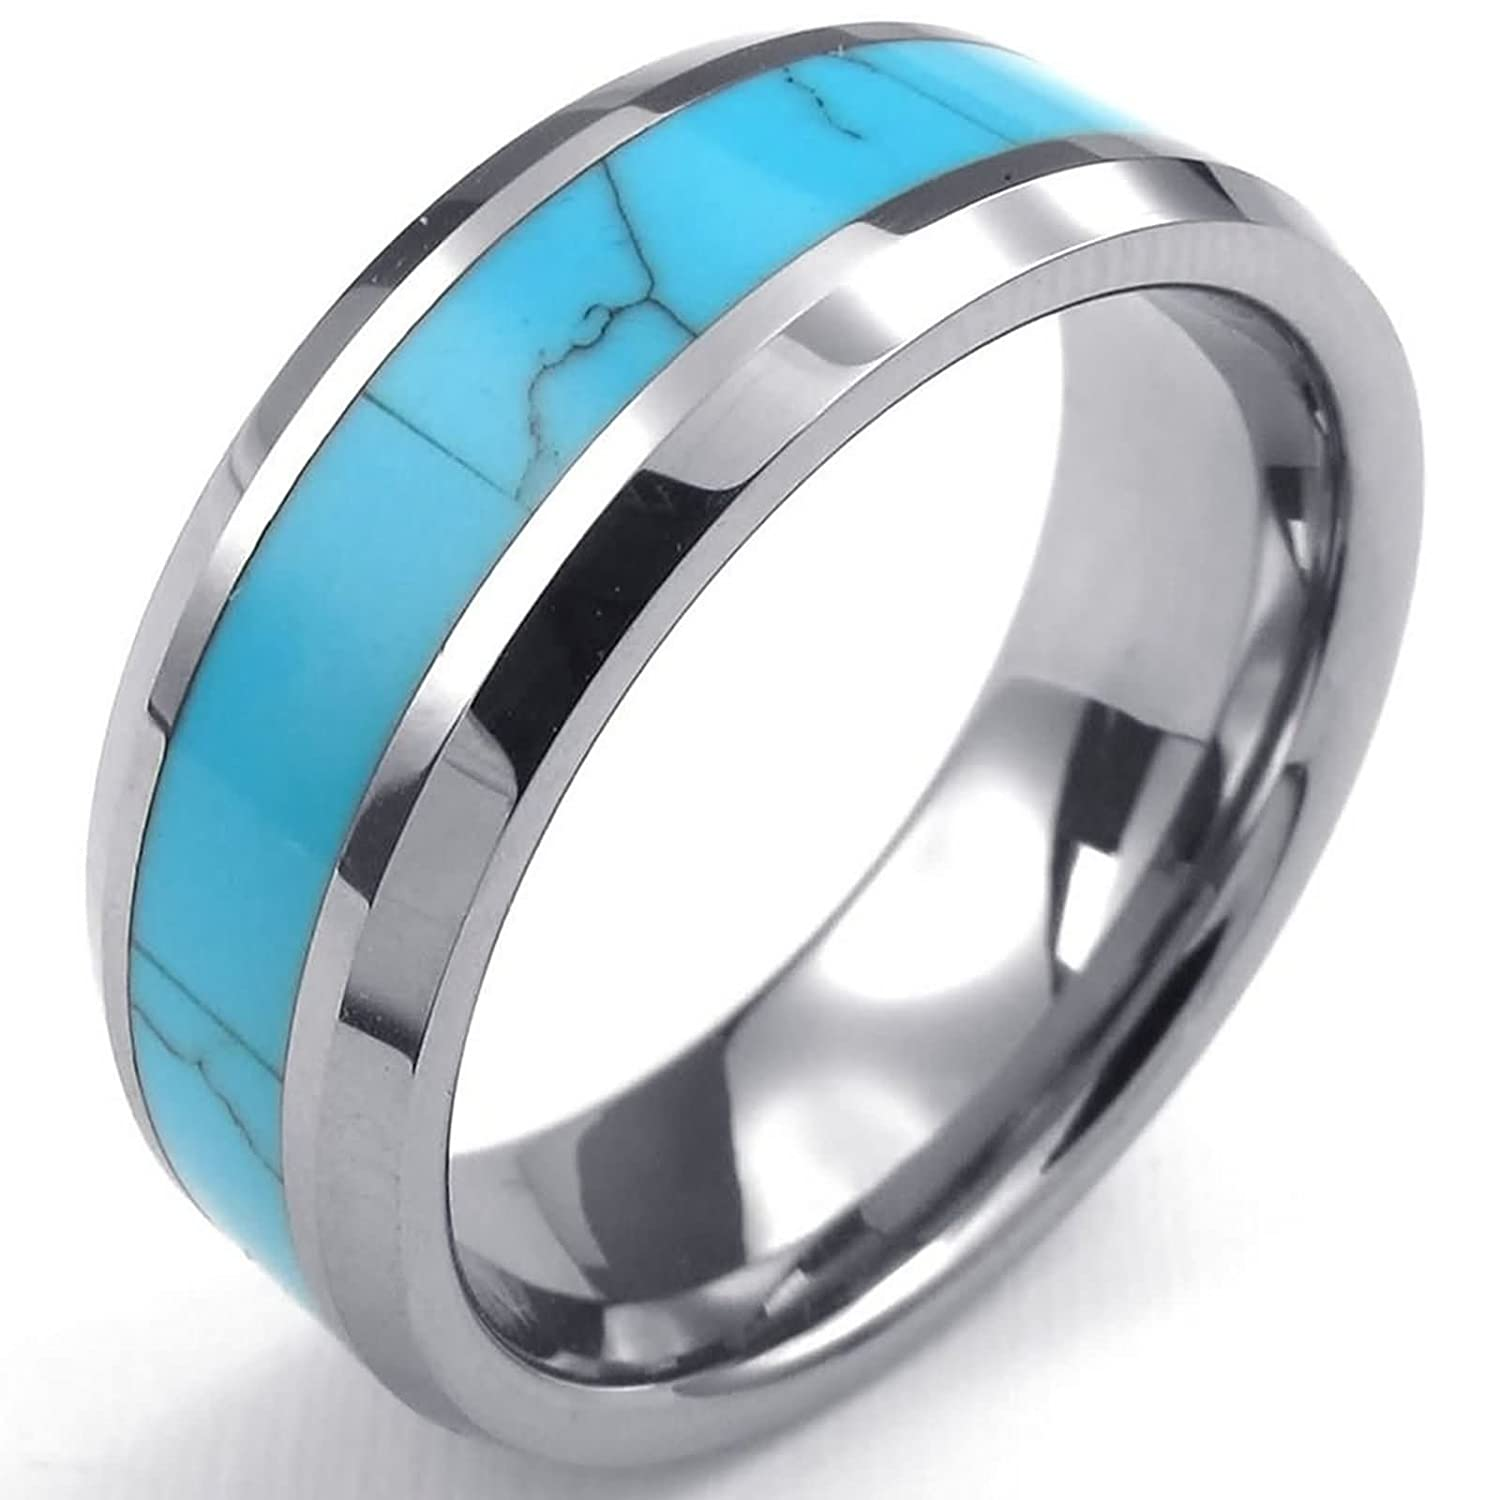 Amazon.com: ANAZOZ Vintage Style 8MM Tungsten Blue Two Tone Wedding Engagement Ring Bands: Jewelry